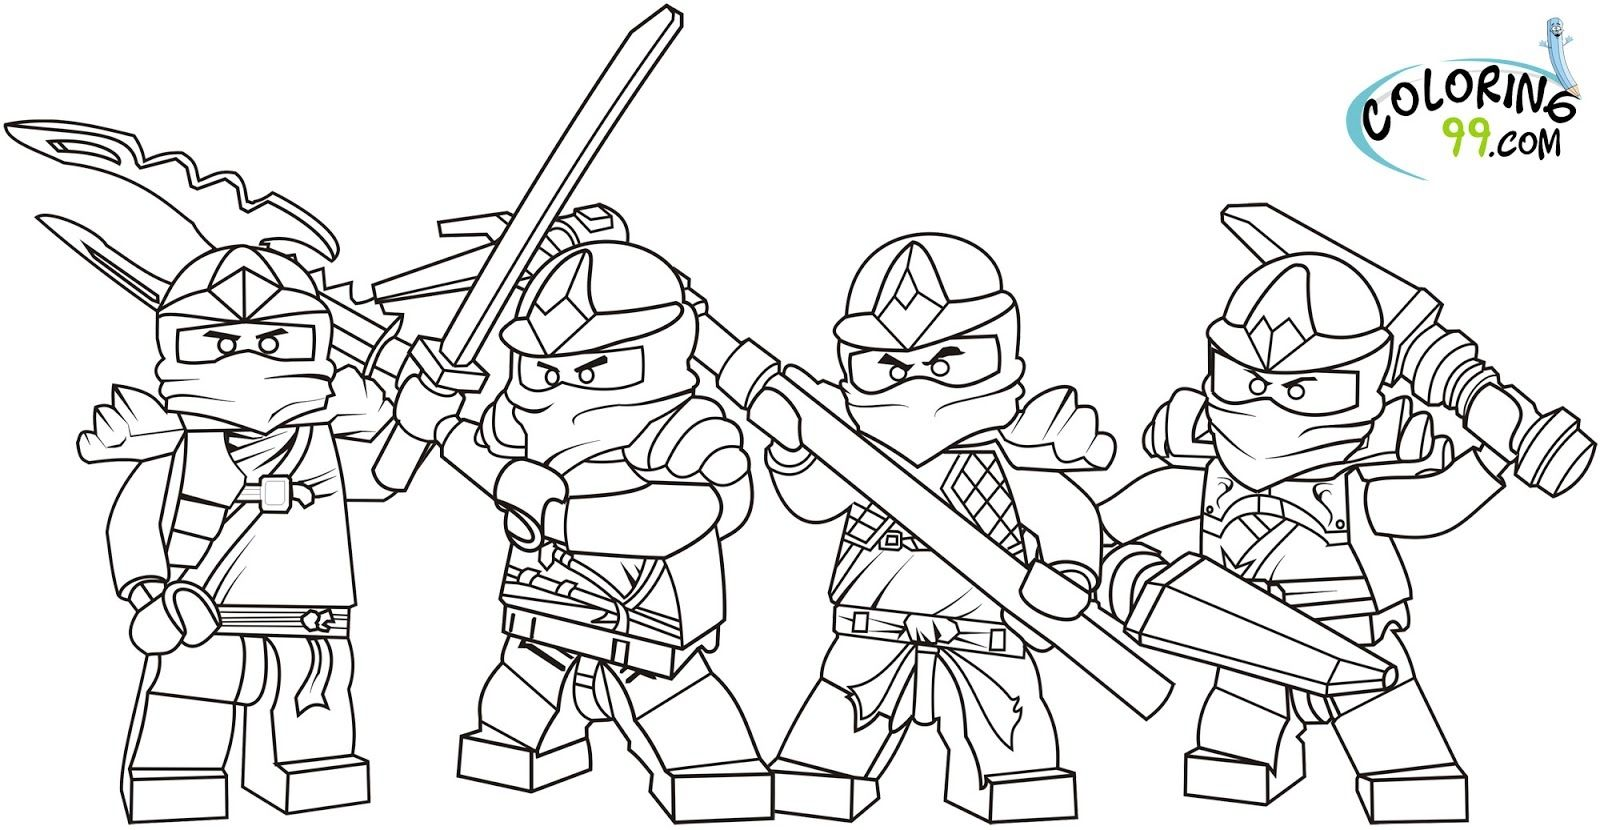 download incredible ninja coloring pages printable for free httpdesignkidsinfodownload incredible ninja coloring pages printable for freehtml